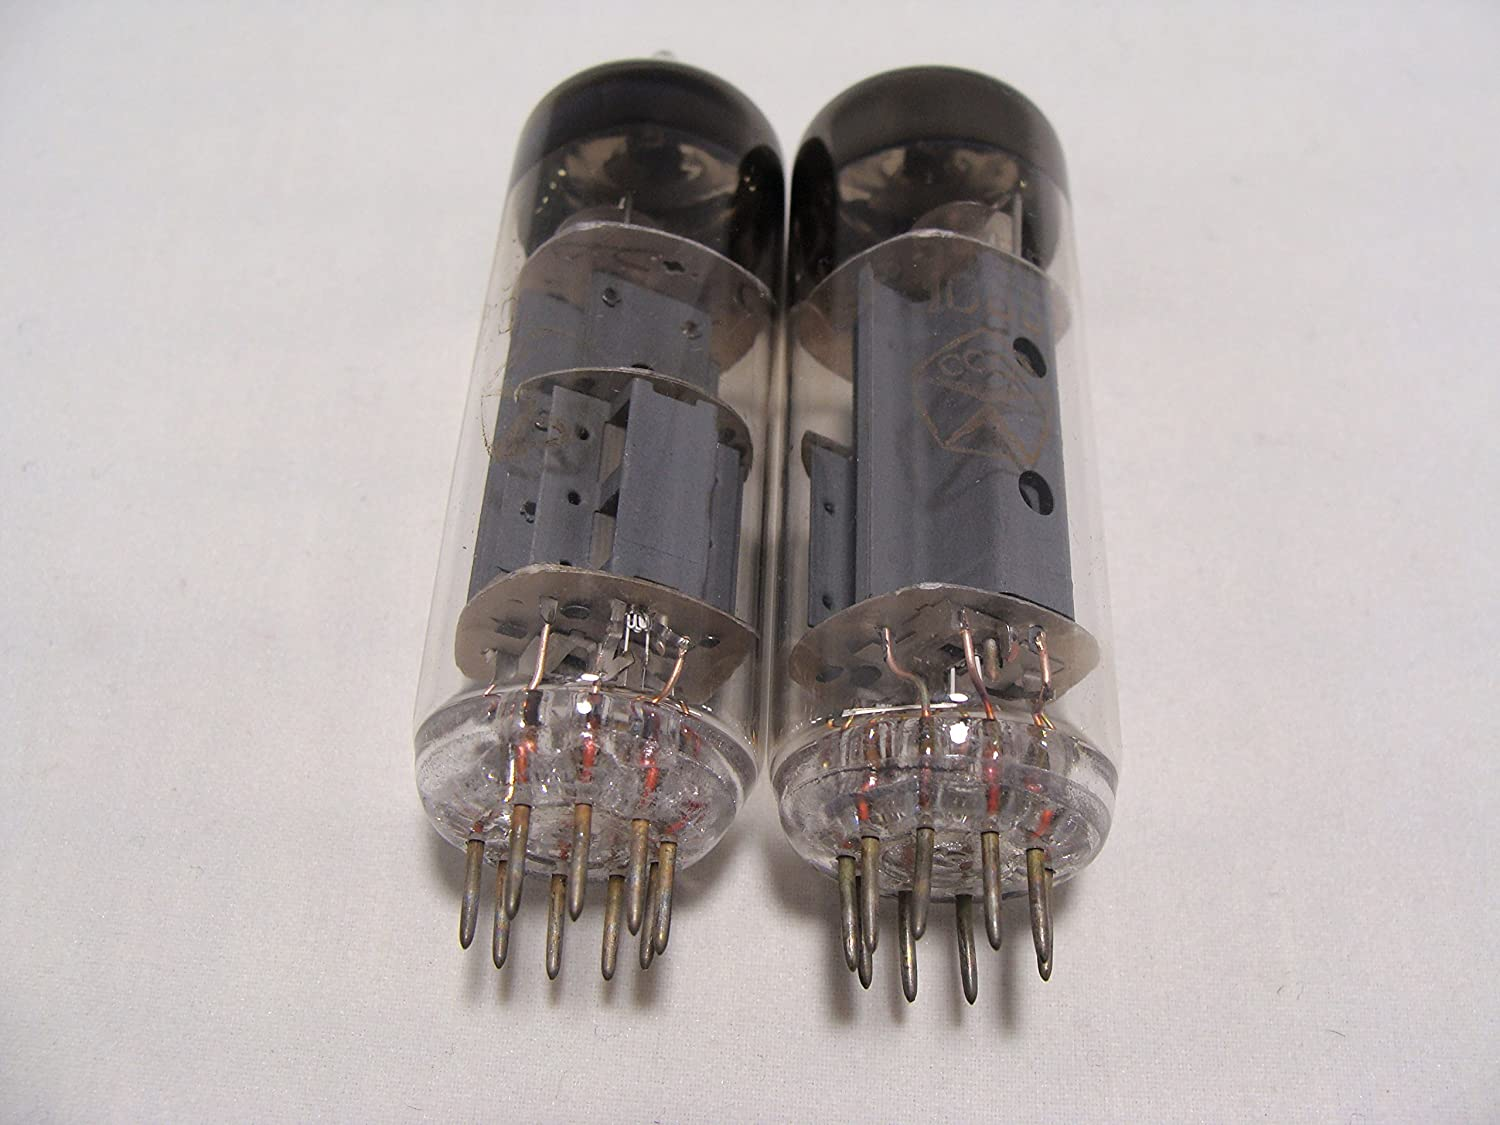 Russian Vacuum Tube Valve 6f5p 6gv8 Ecl85 Nos 6pcs Diodes Musical Instruments